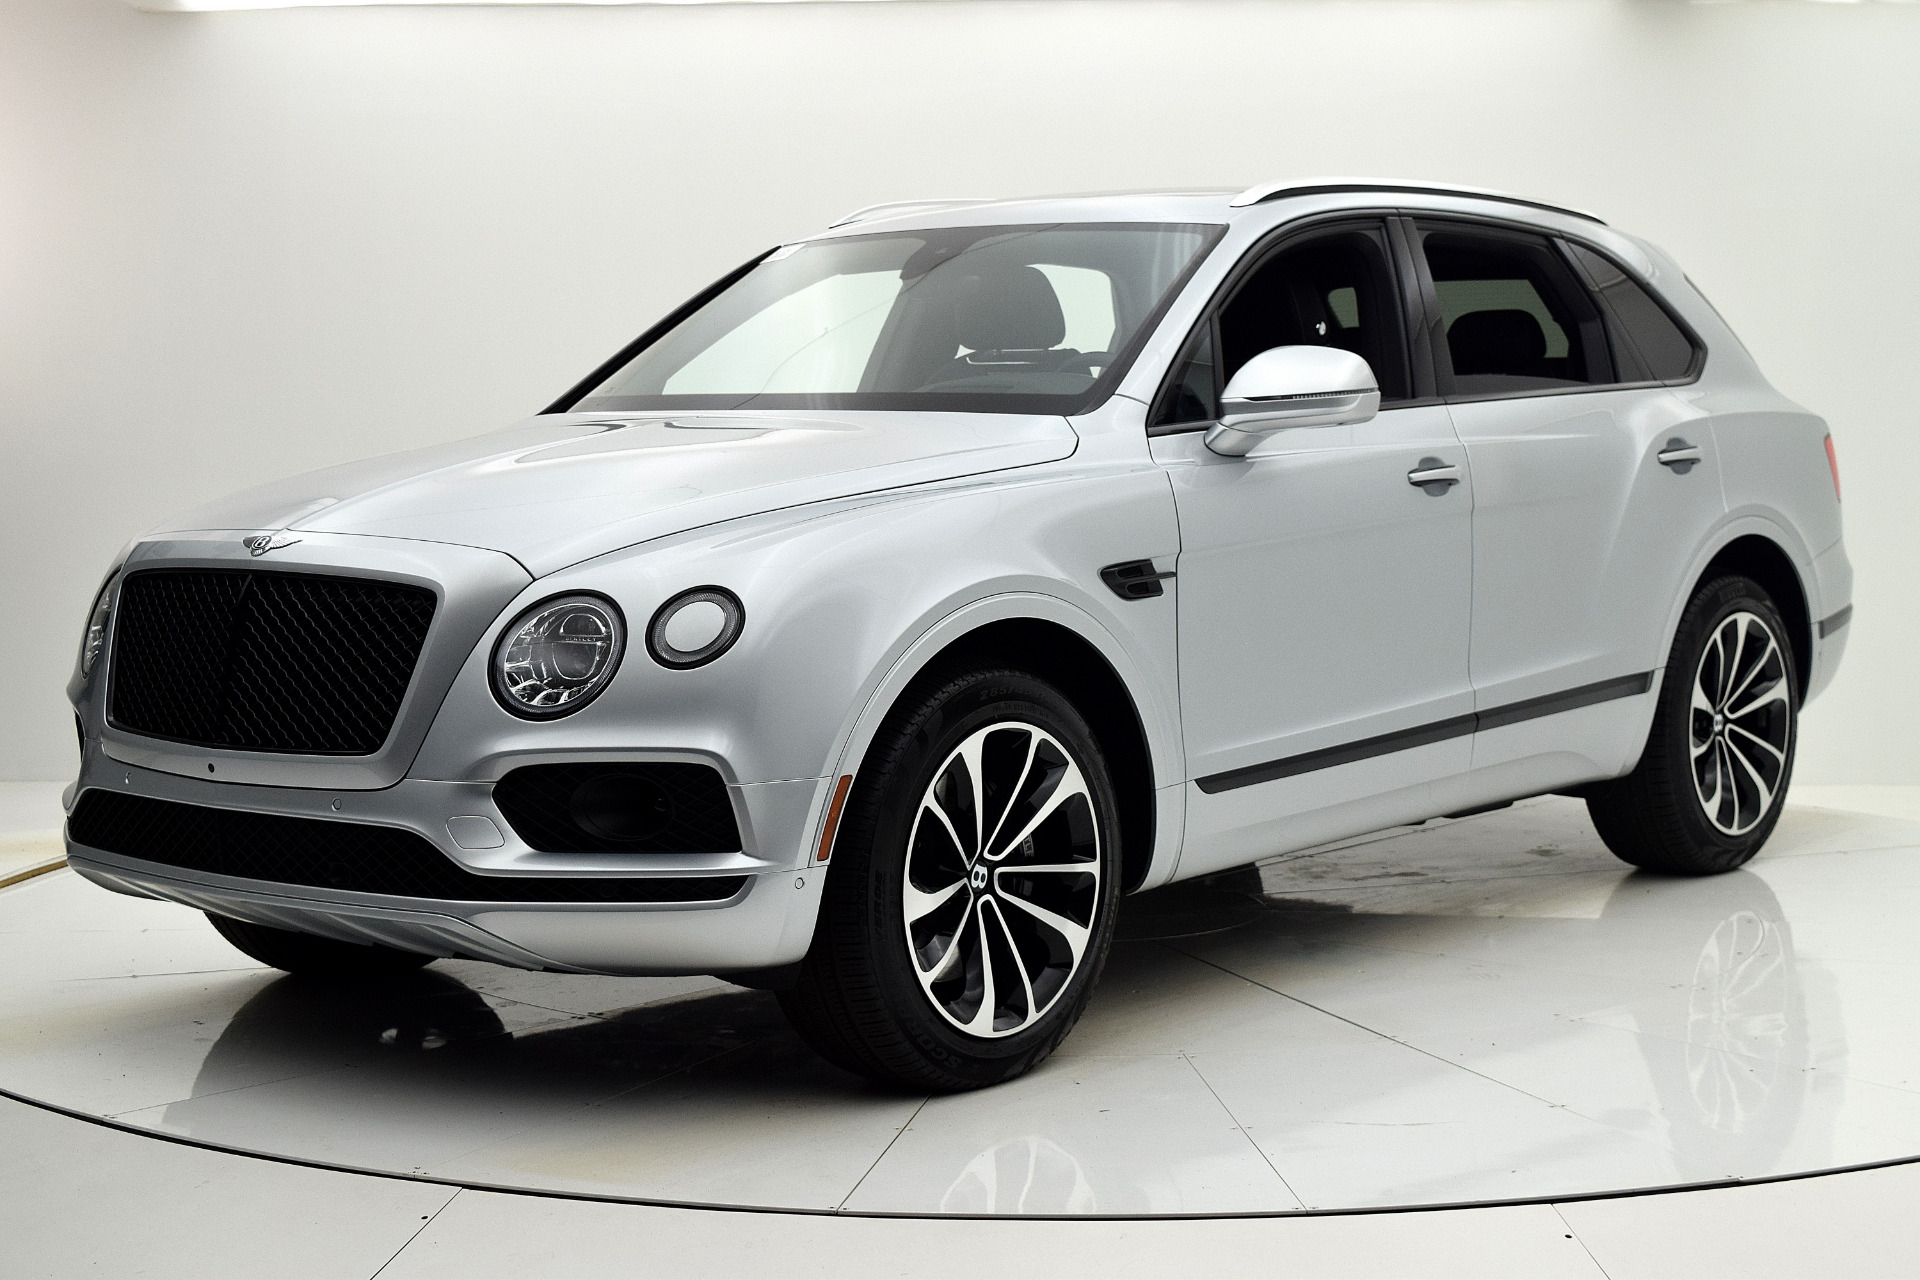 Bentley Bentayga 2018 For Sale $179880 Stock Number 19L102AJI